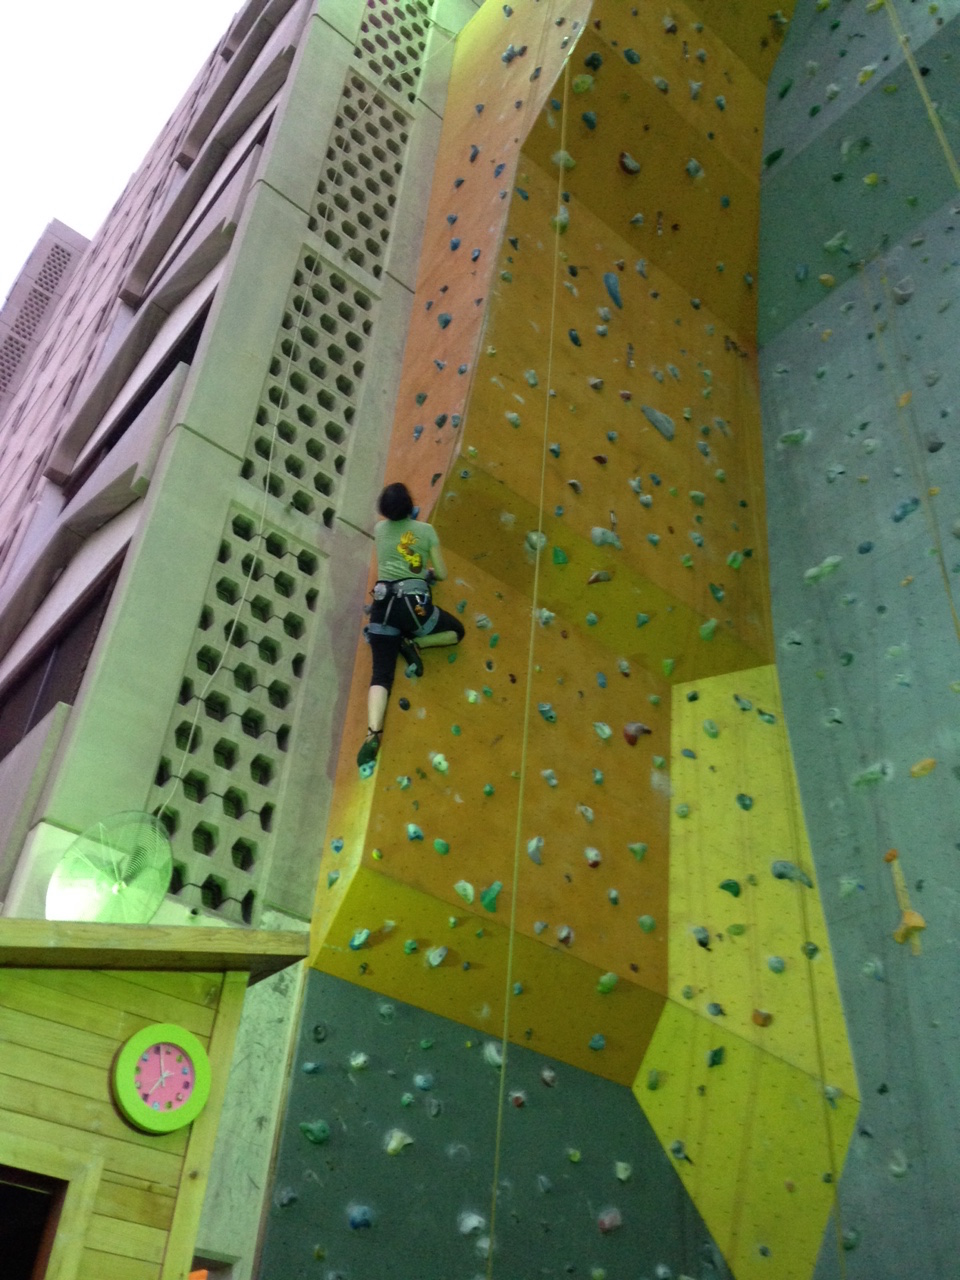 A climbing wall mounted on the outside of an apartment building. Crazy! It's the highest climbing wall I've ever seen, but I'm not aware of any world-record standing it may have.